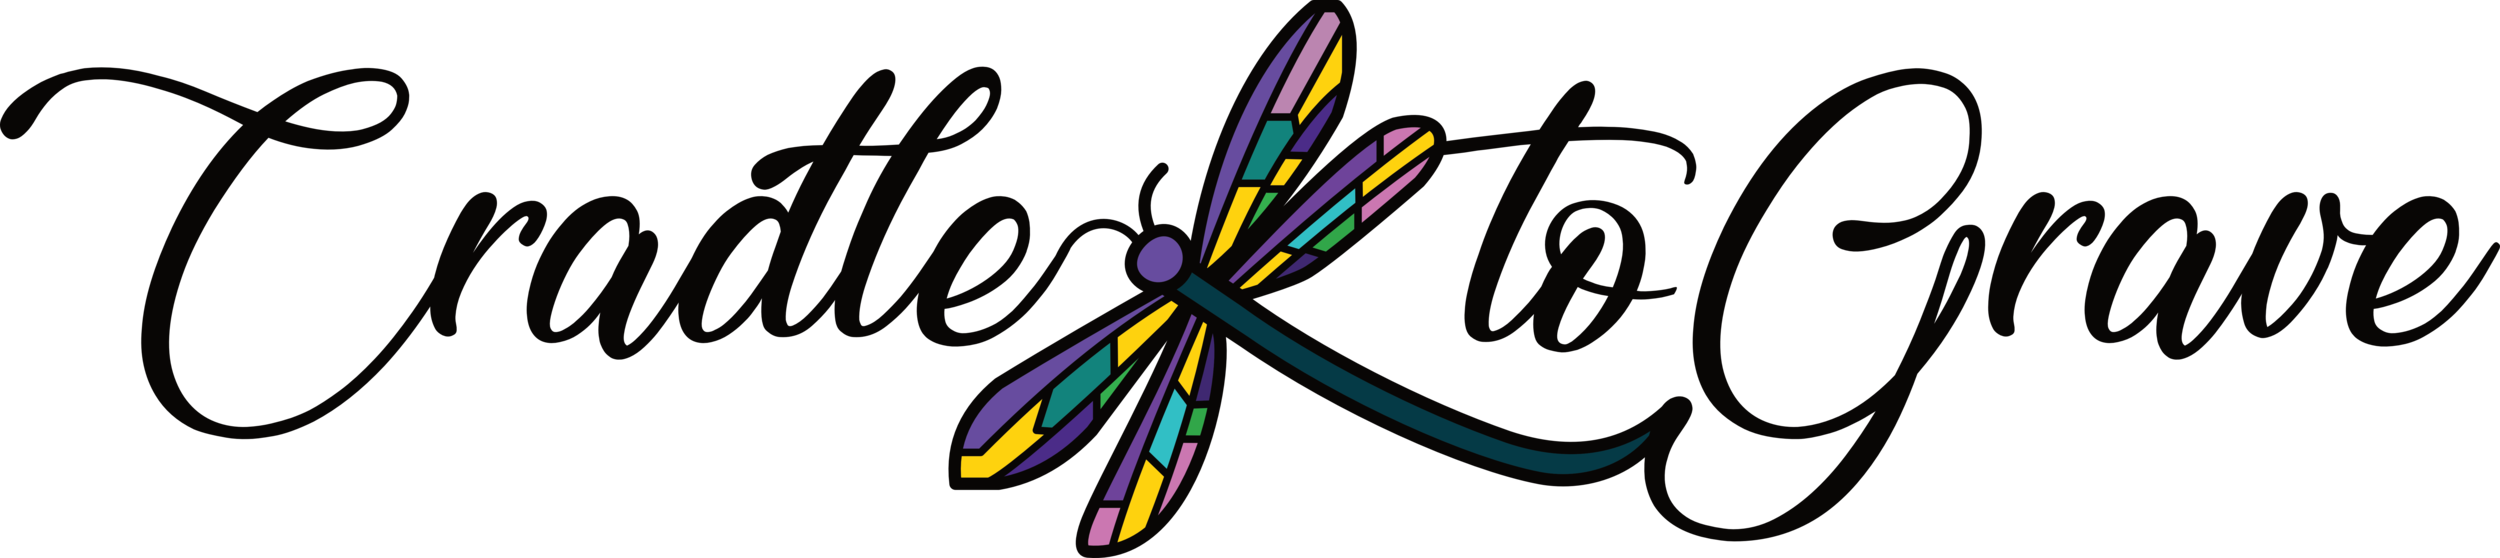 dragonfly logo 01 colour.png